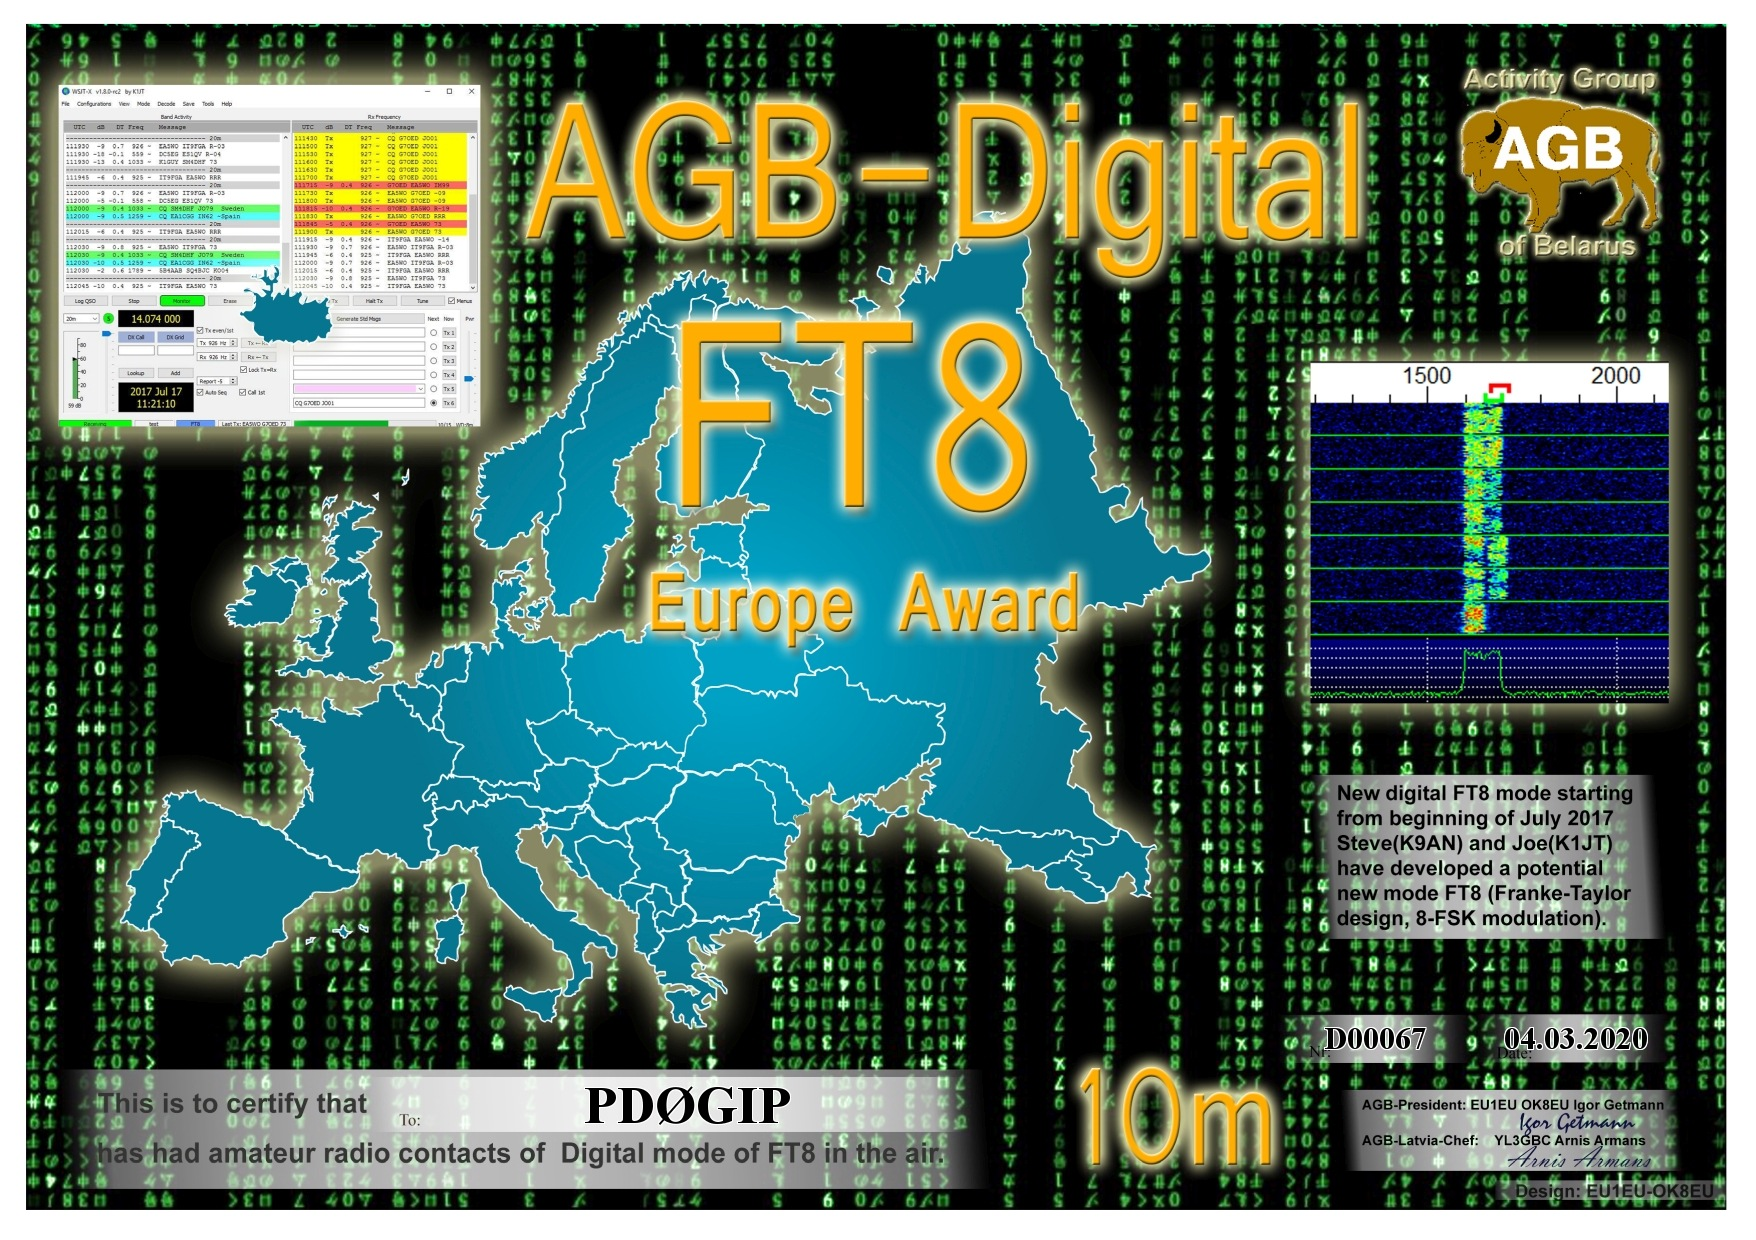 PD0GIP FT8 EUROPE 10M AGB